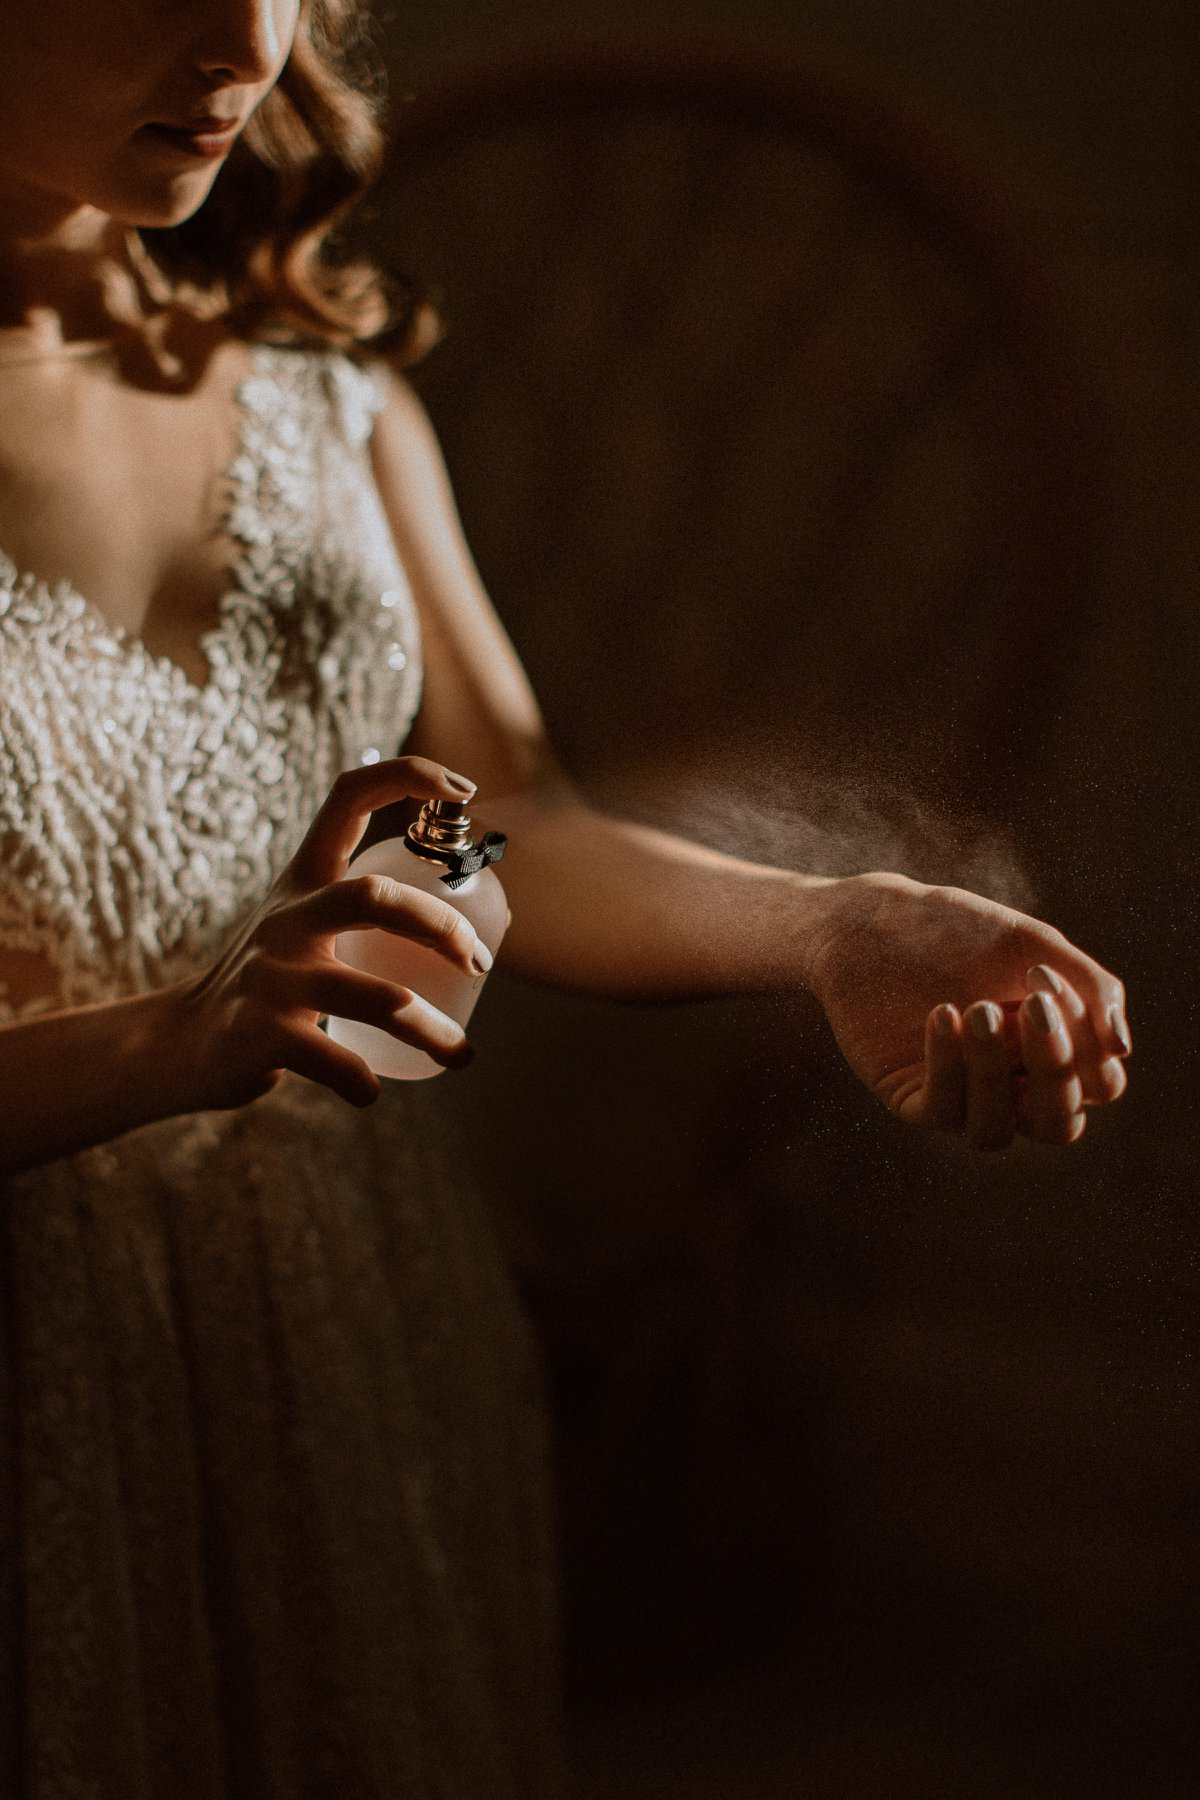 a bride sprays perfume on her hand